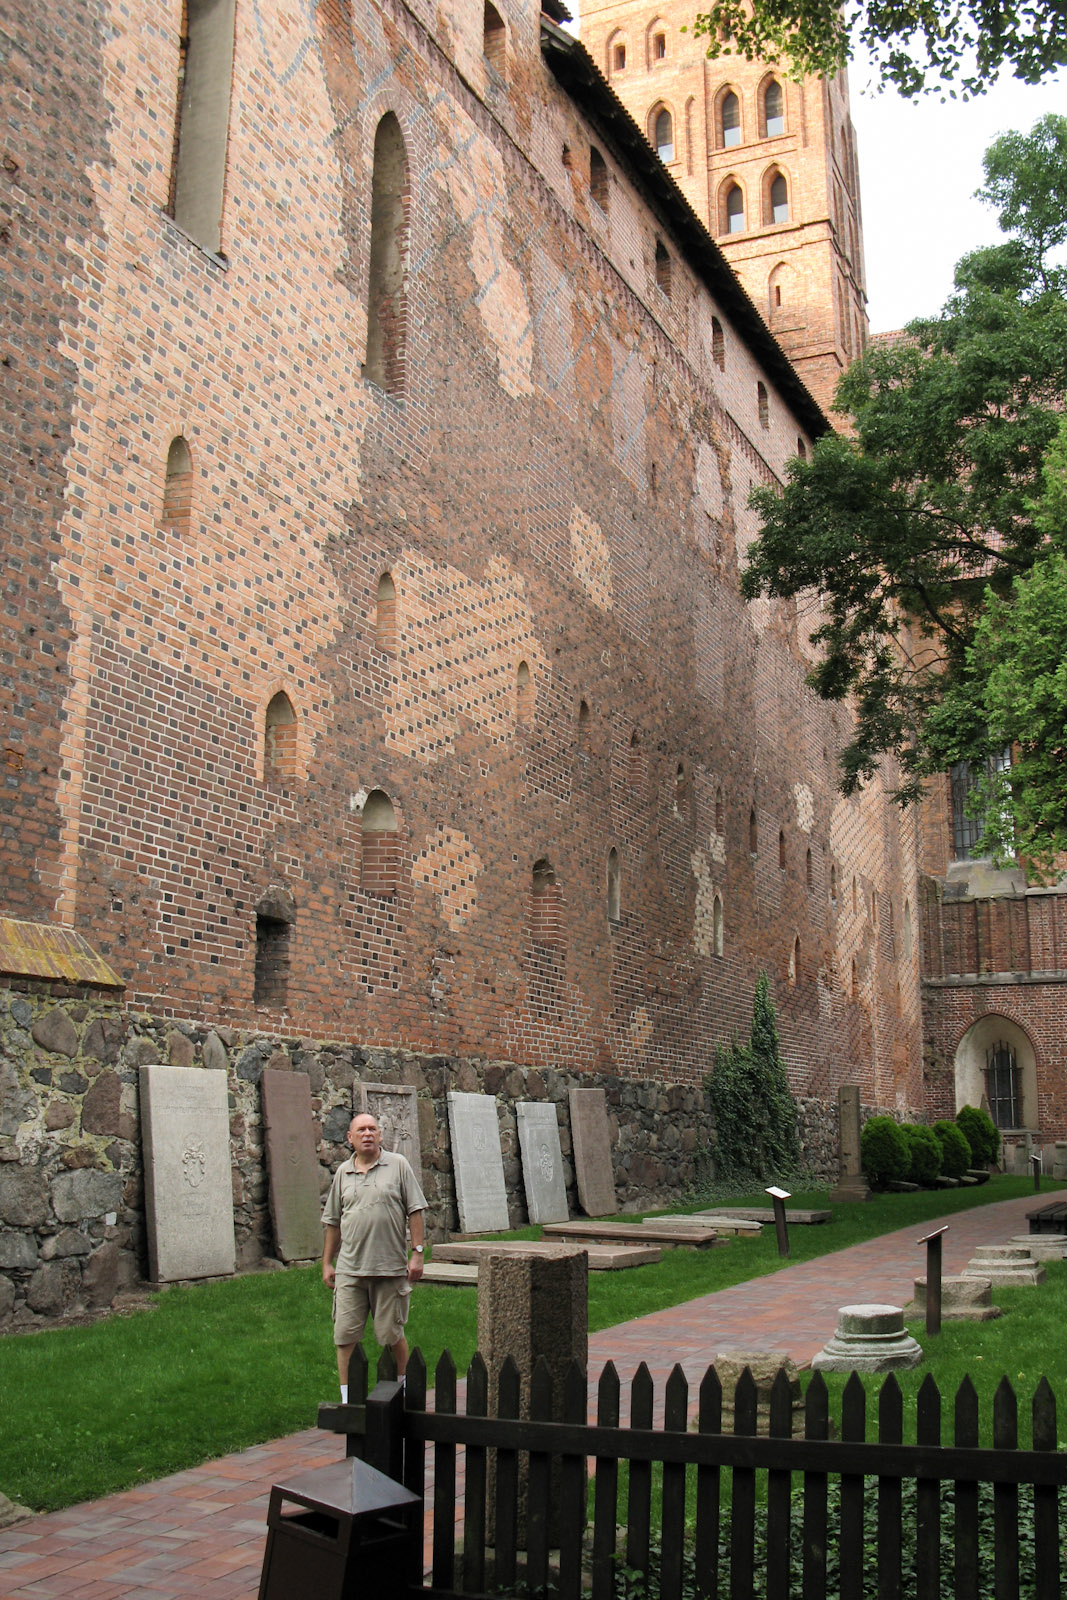 Father of Bronek in Malbork Teutonic Knights Order Fortress